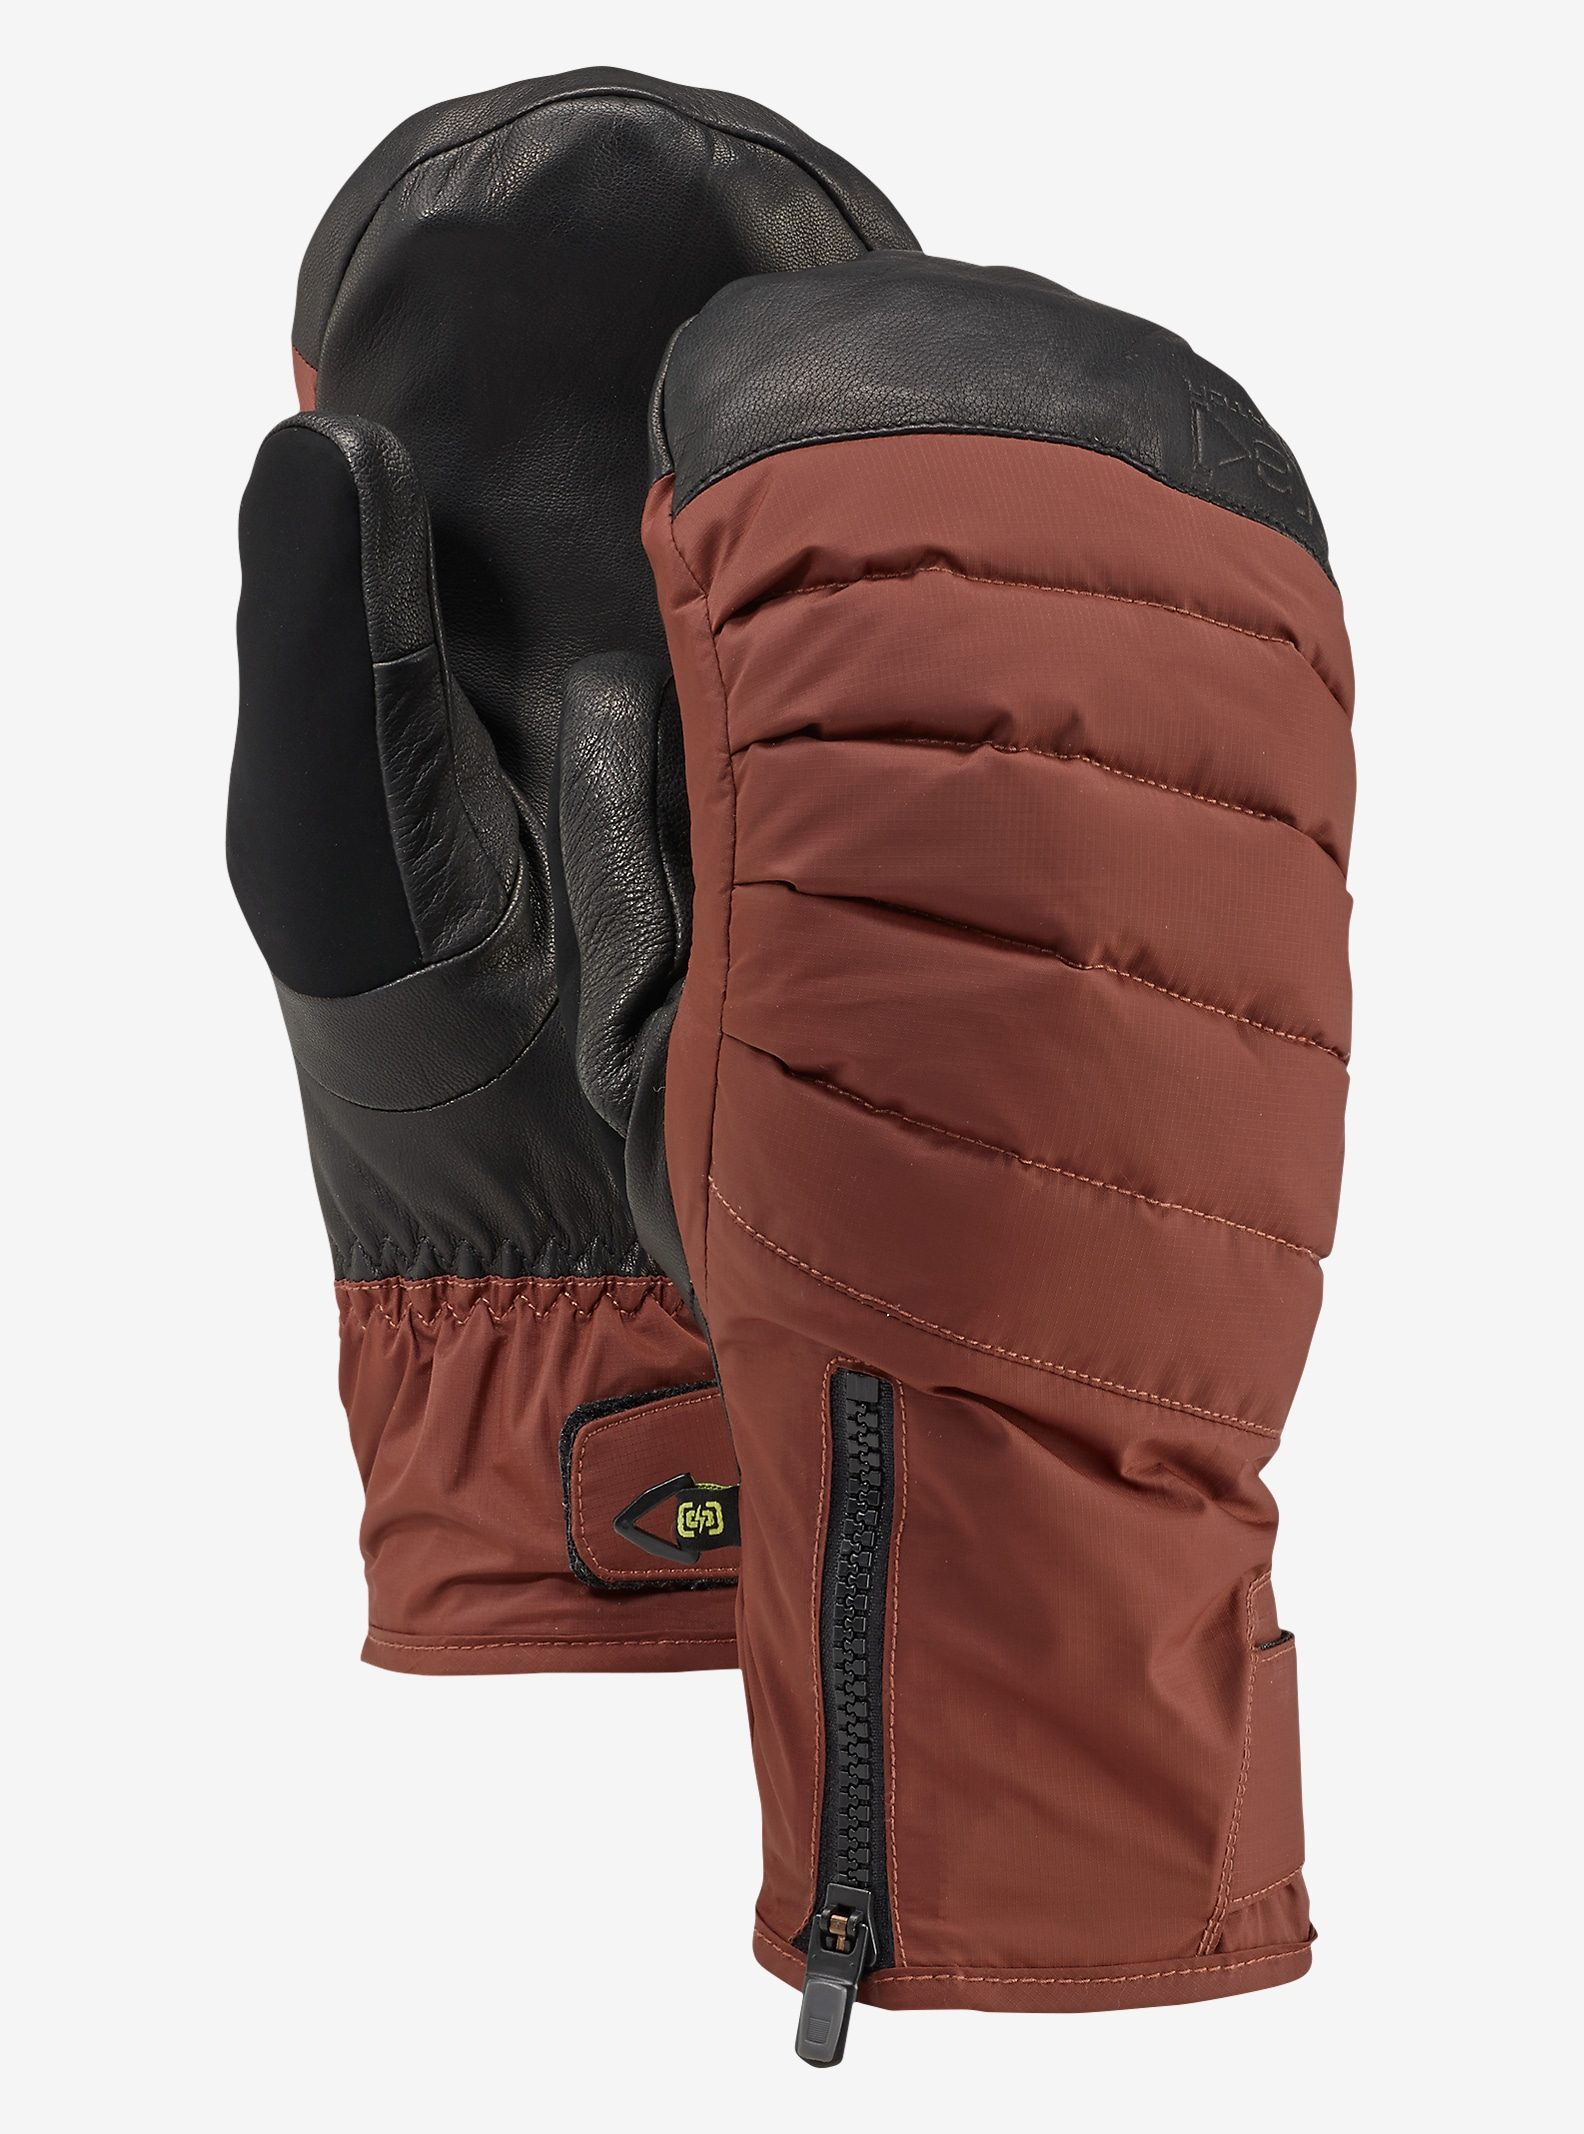 Burton [ak] Oven Mitt shown in Matador